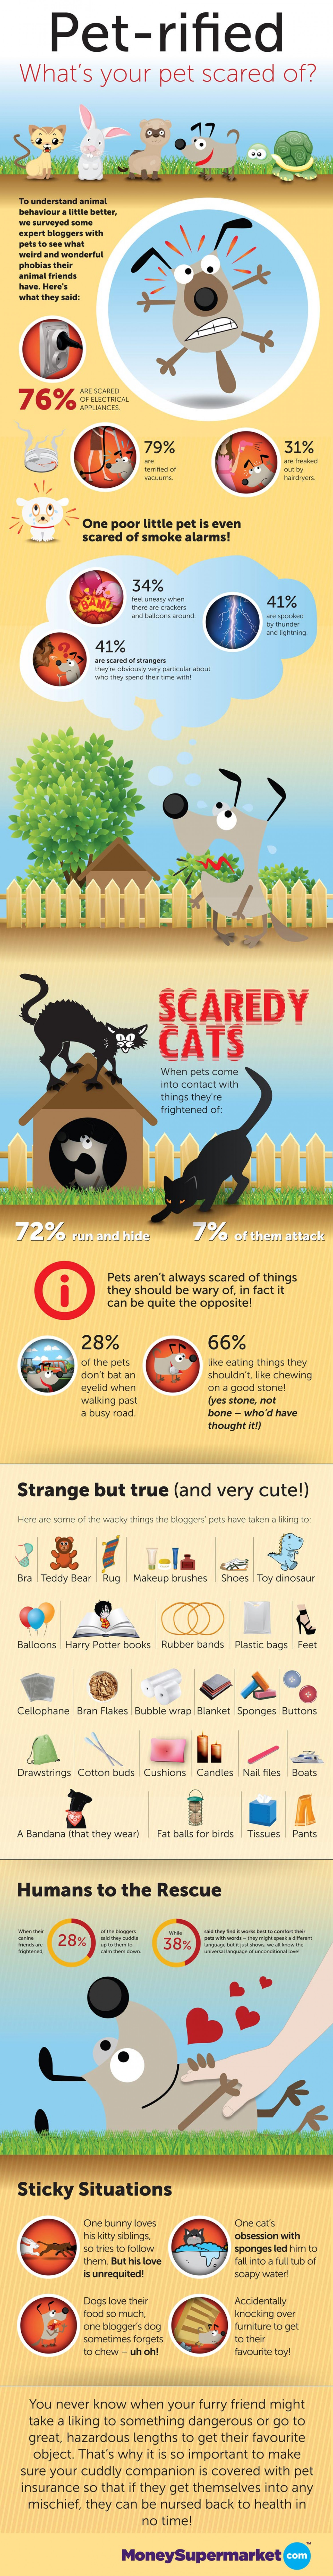 Pet-rified- What's your pet scared of? Infographic